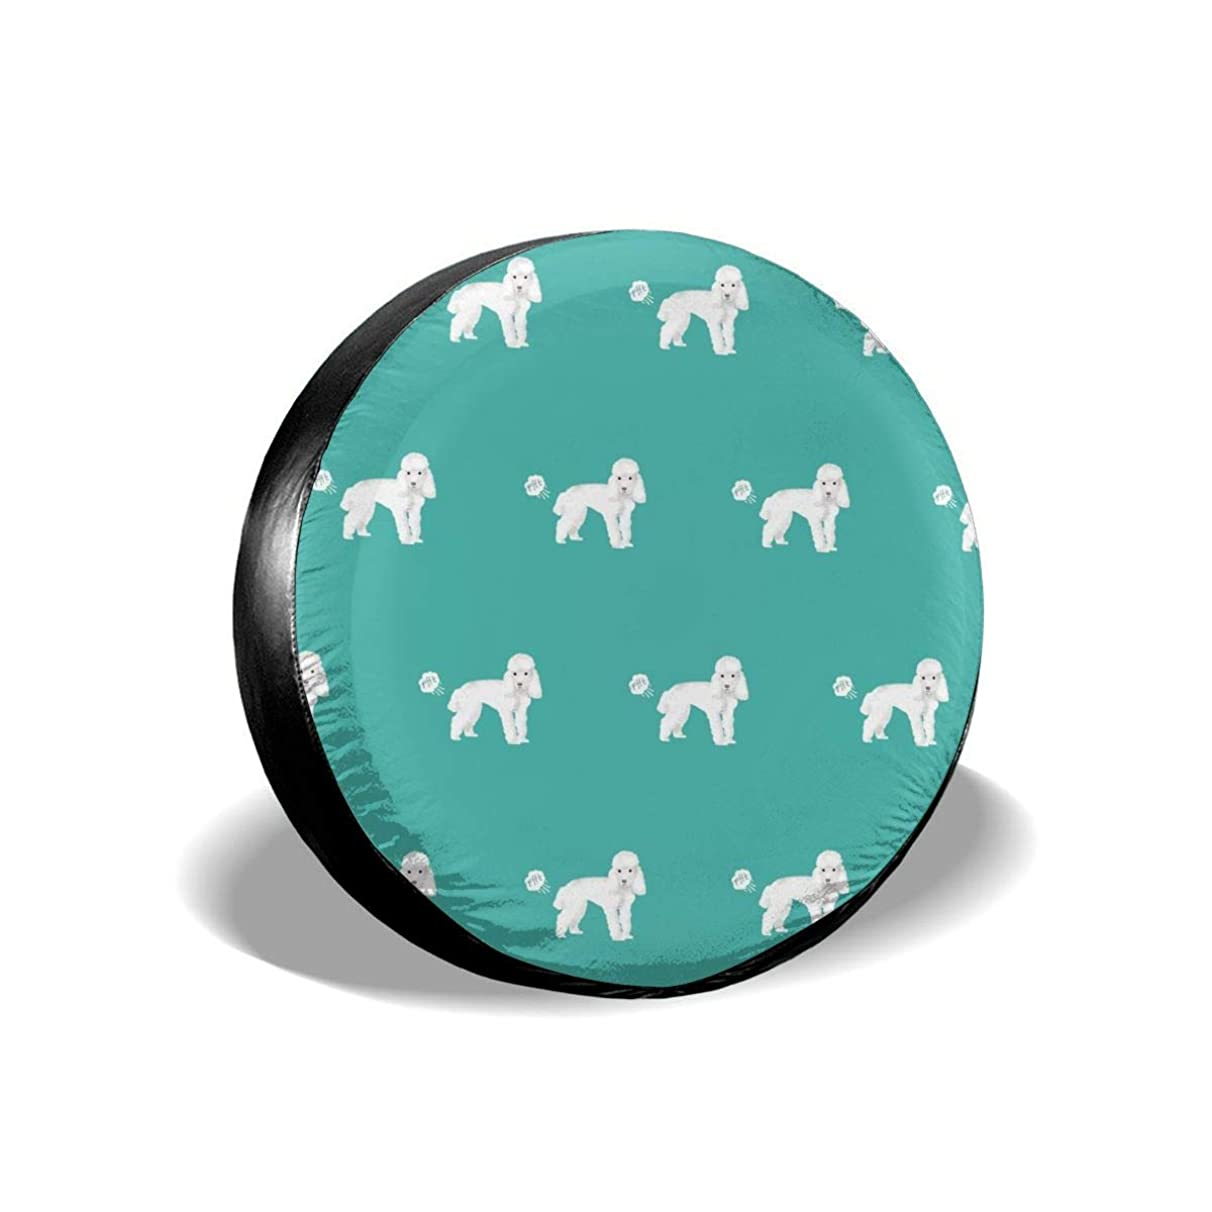 X-Large Toy Poodle Funny Dog Fart Pets Pure Breed Dogs Teal Polyester Universal Spare Wheel Tire Cover Wheel Covers Jeep Trailer RV SUV Truck Camper Travel Trailer Accessories(14,15,16,17 Inch)